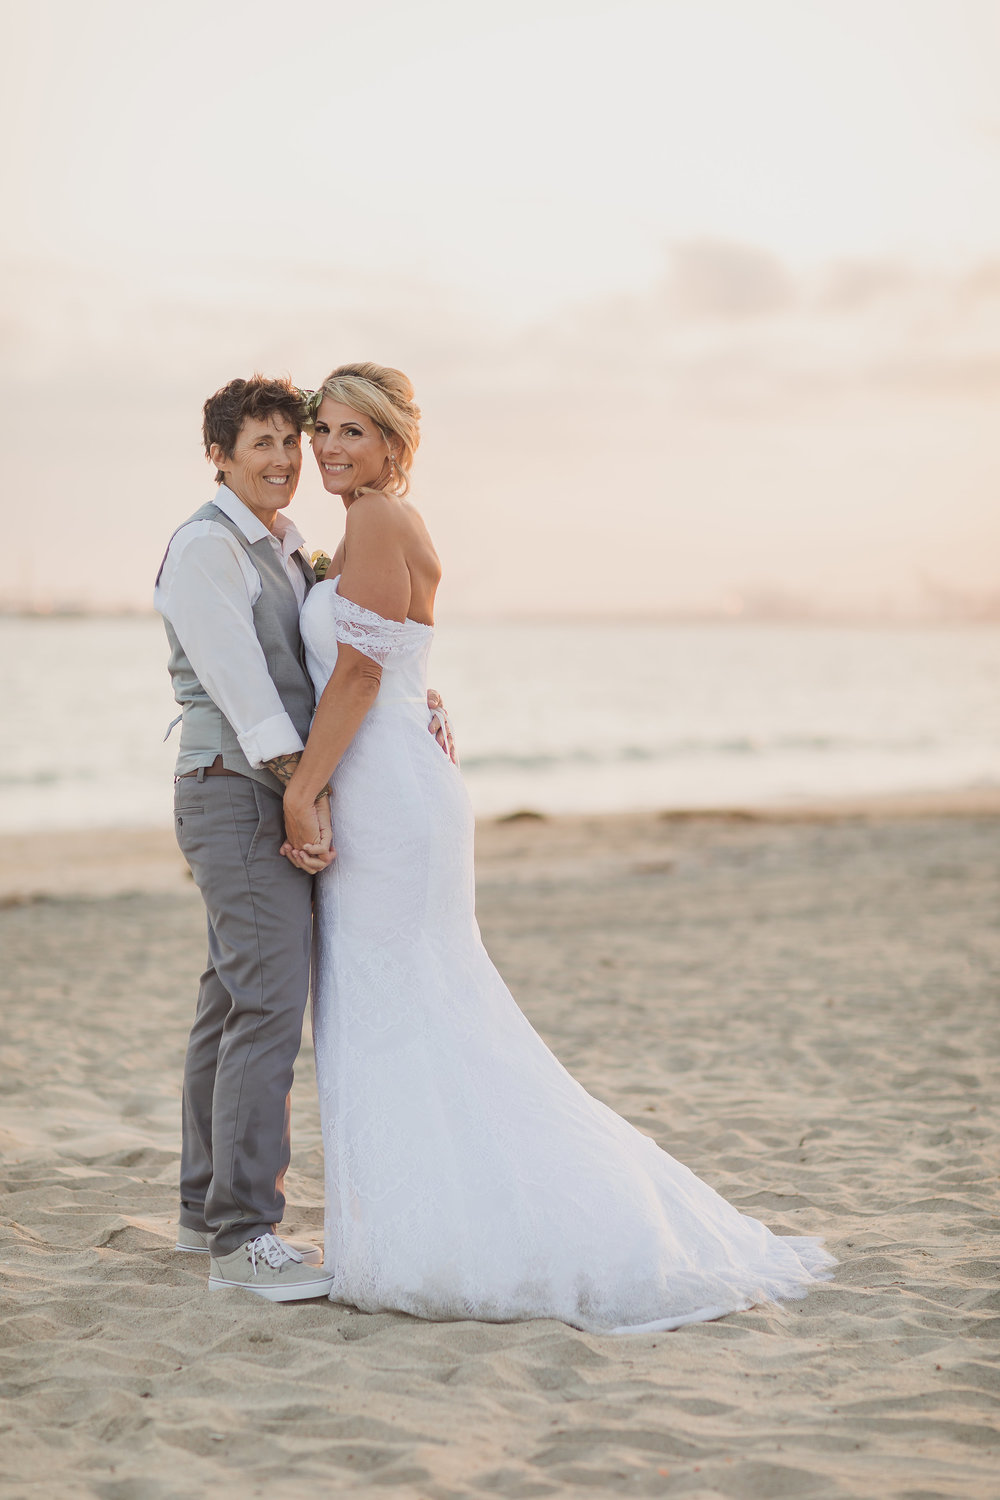 Sunset Wedding Portraits on the Beach for Hers & Hers.jpg